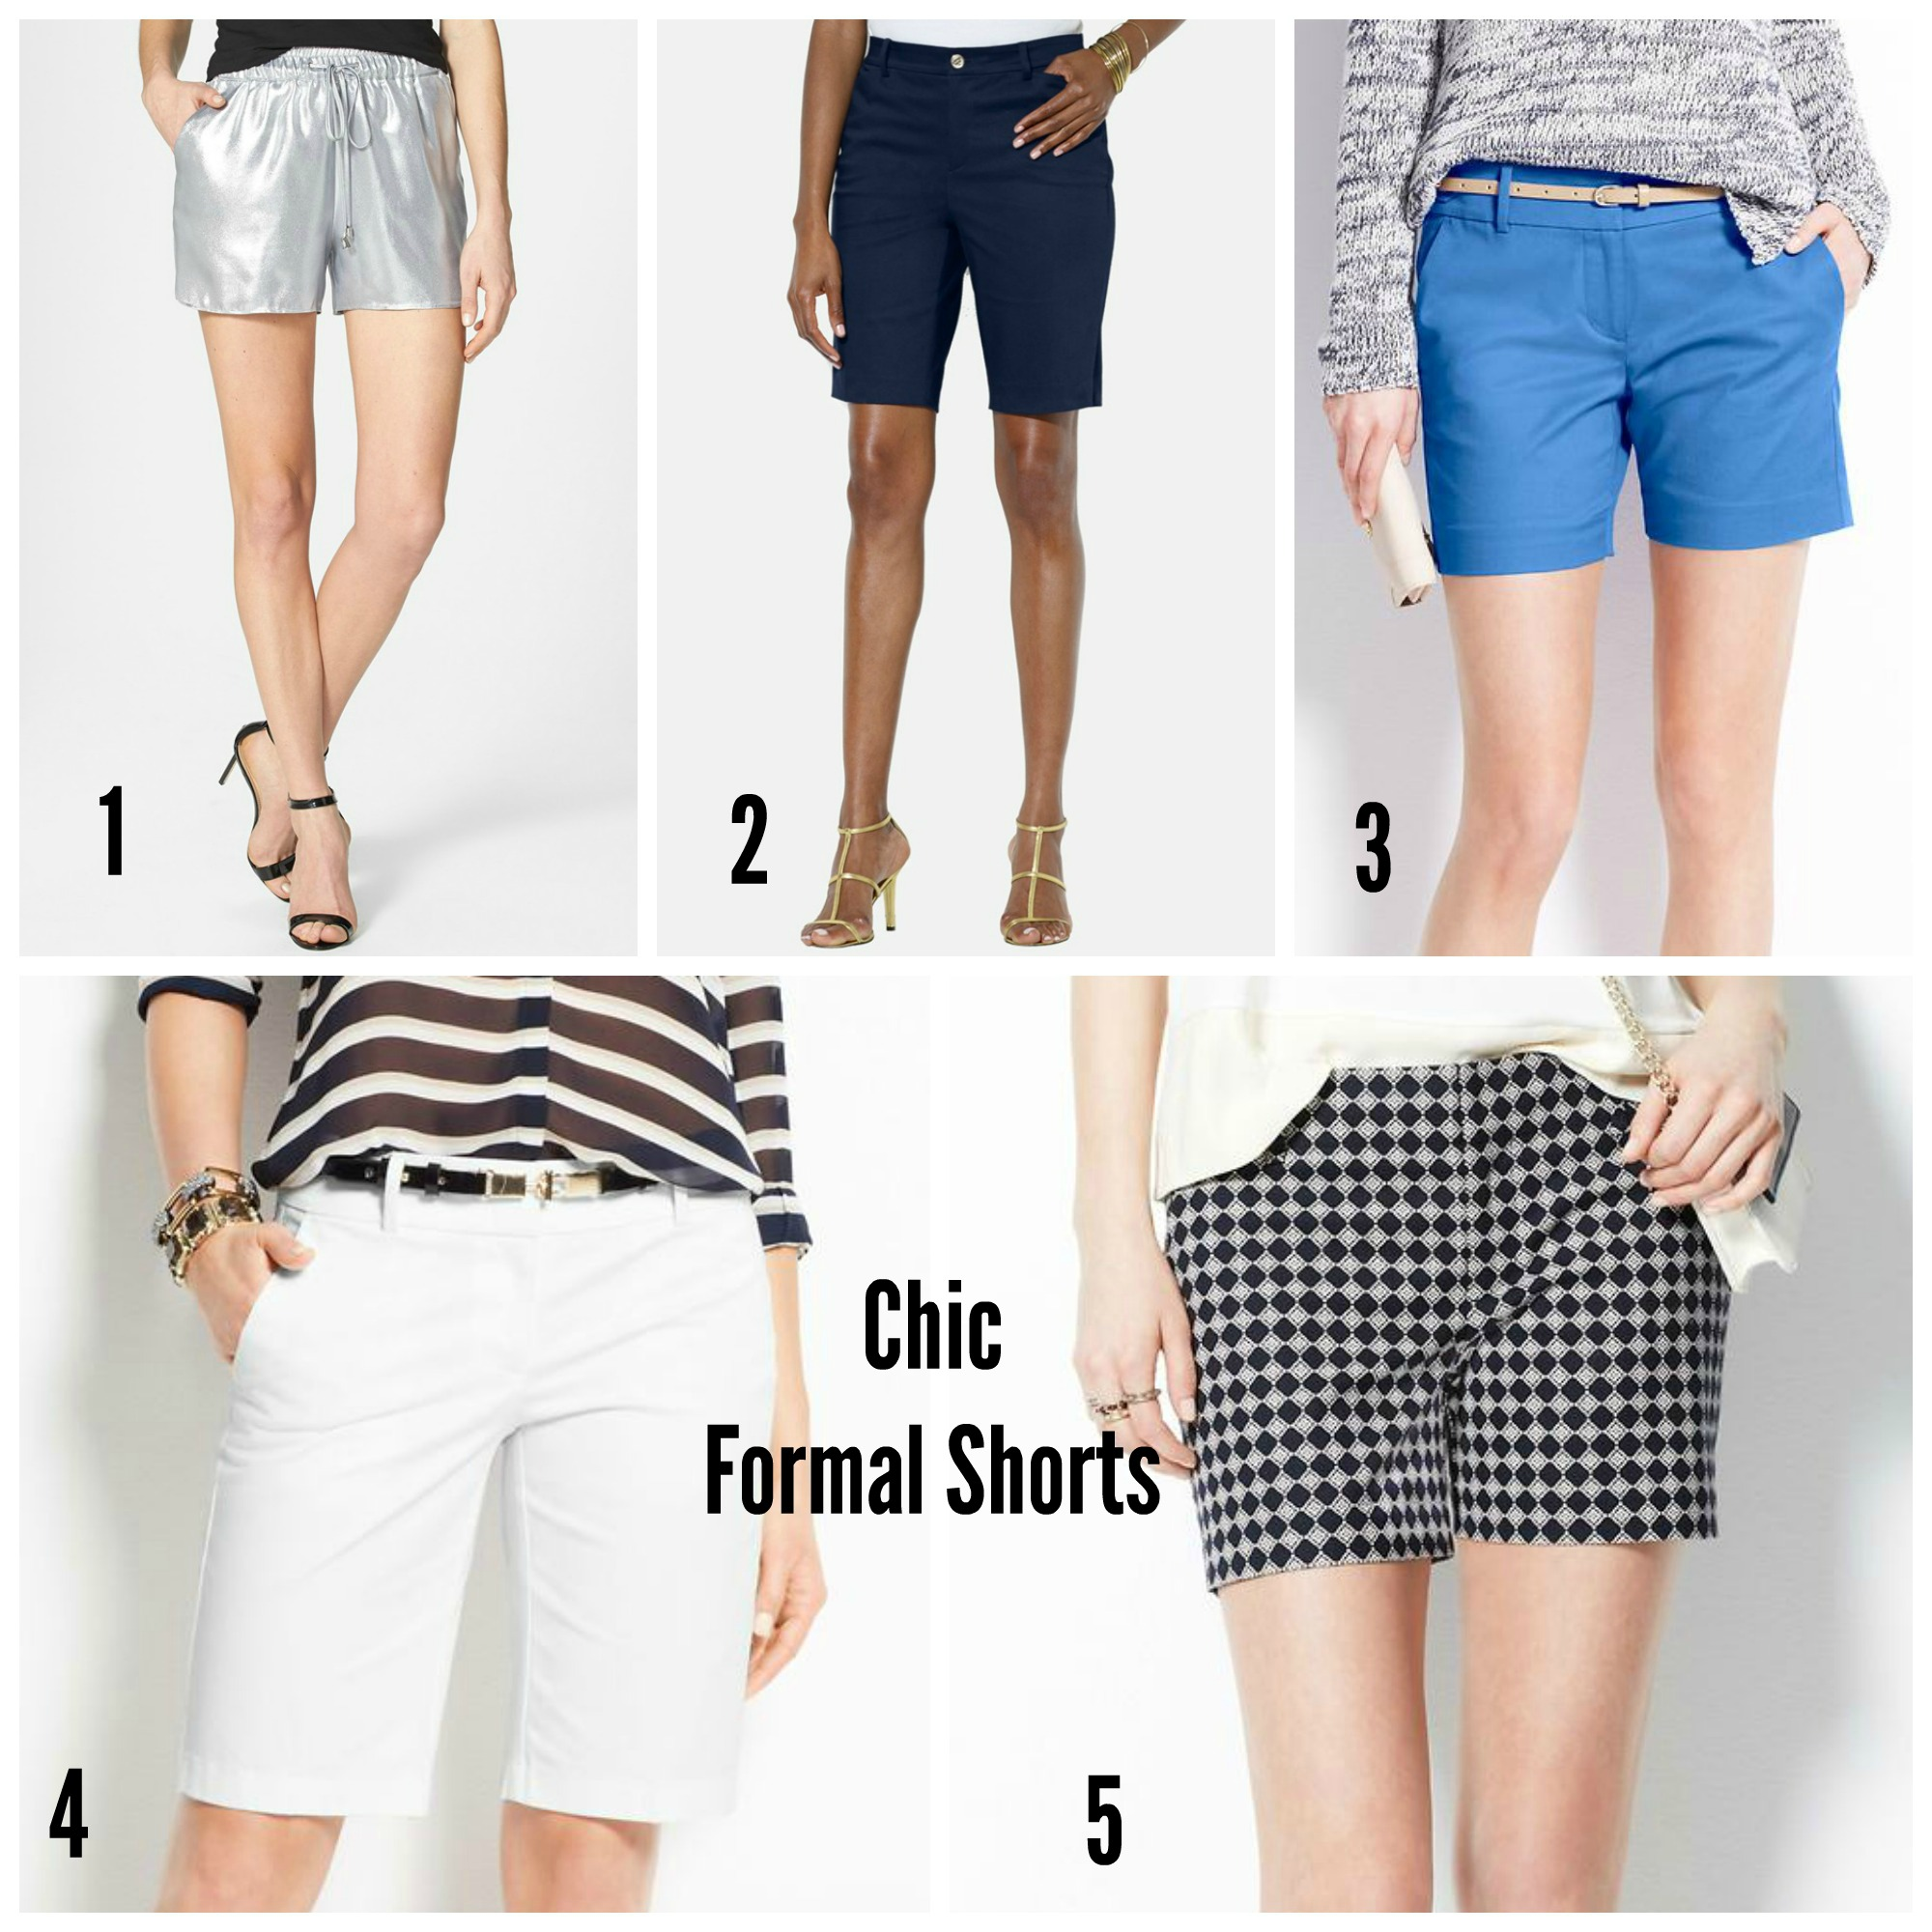 Chic Formal Shorts